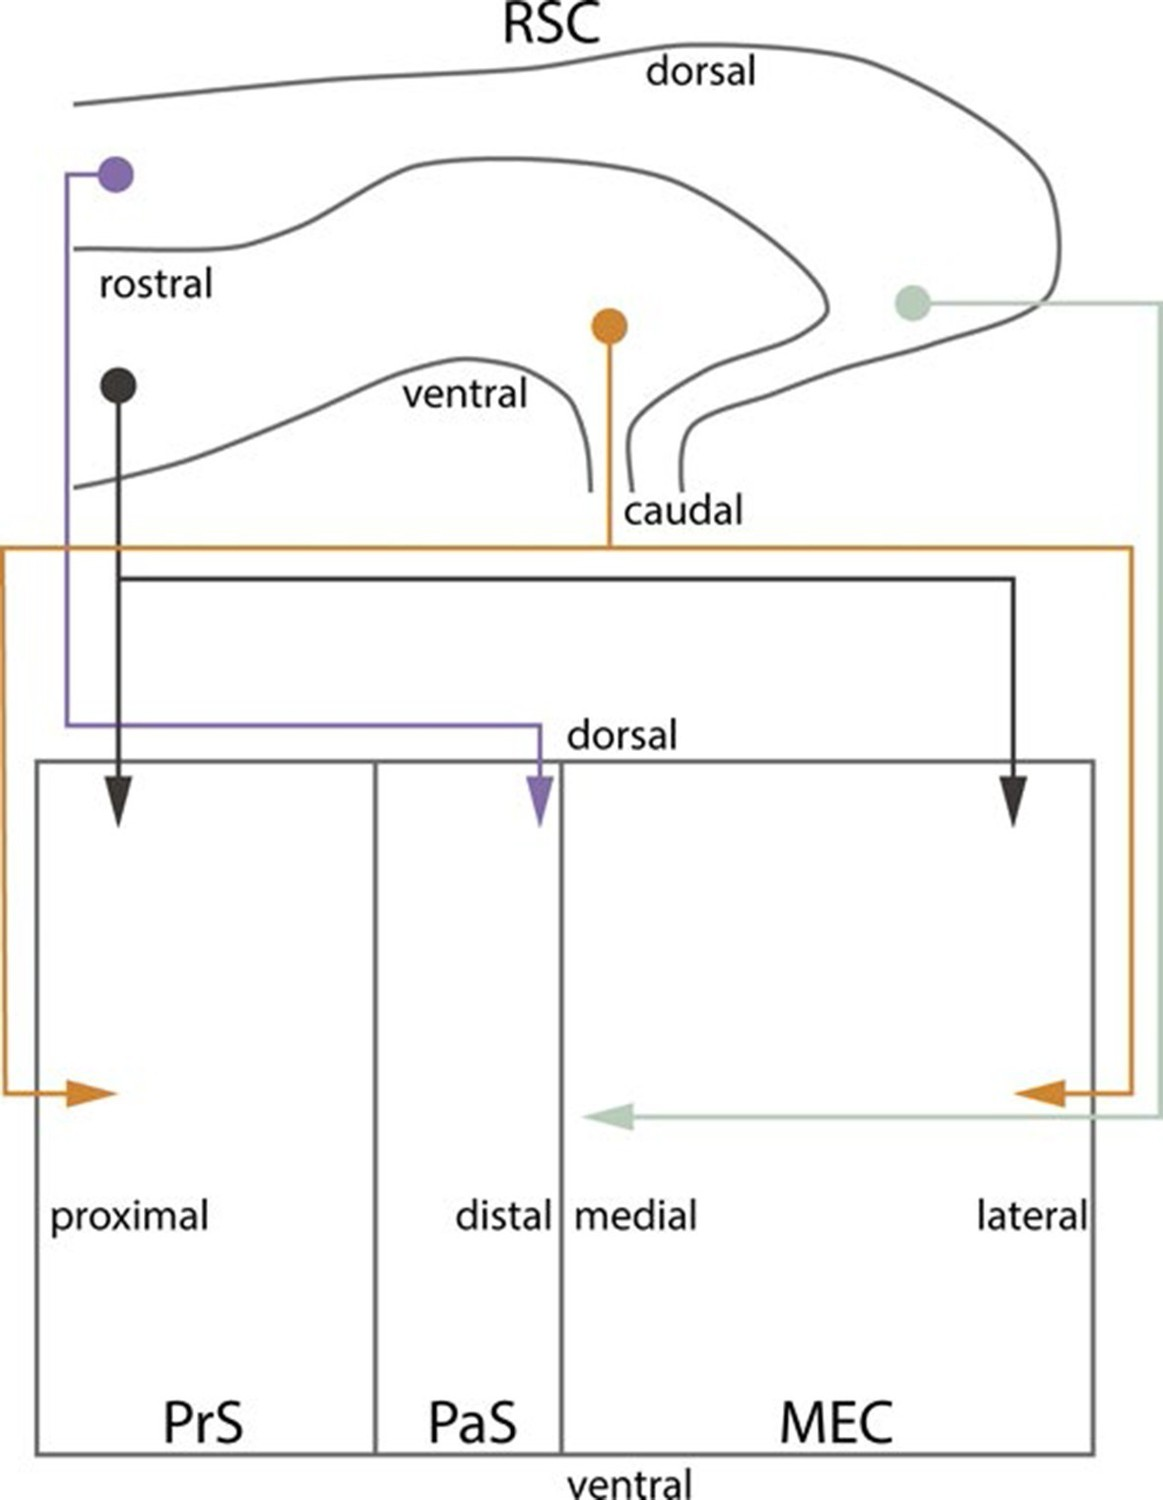 Postnatal Development Of Retrosplenial Projections To The Witter Wiring Diagram Summary Topographical Organization From Rsc Phr In Developing And Adult Brain Schematic Representation